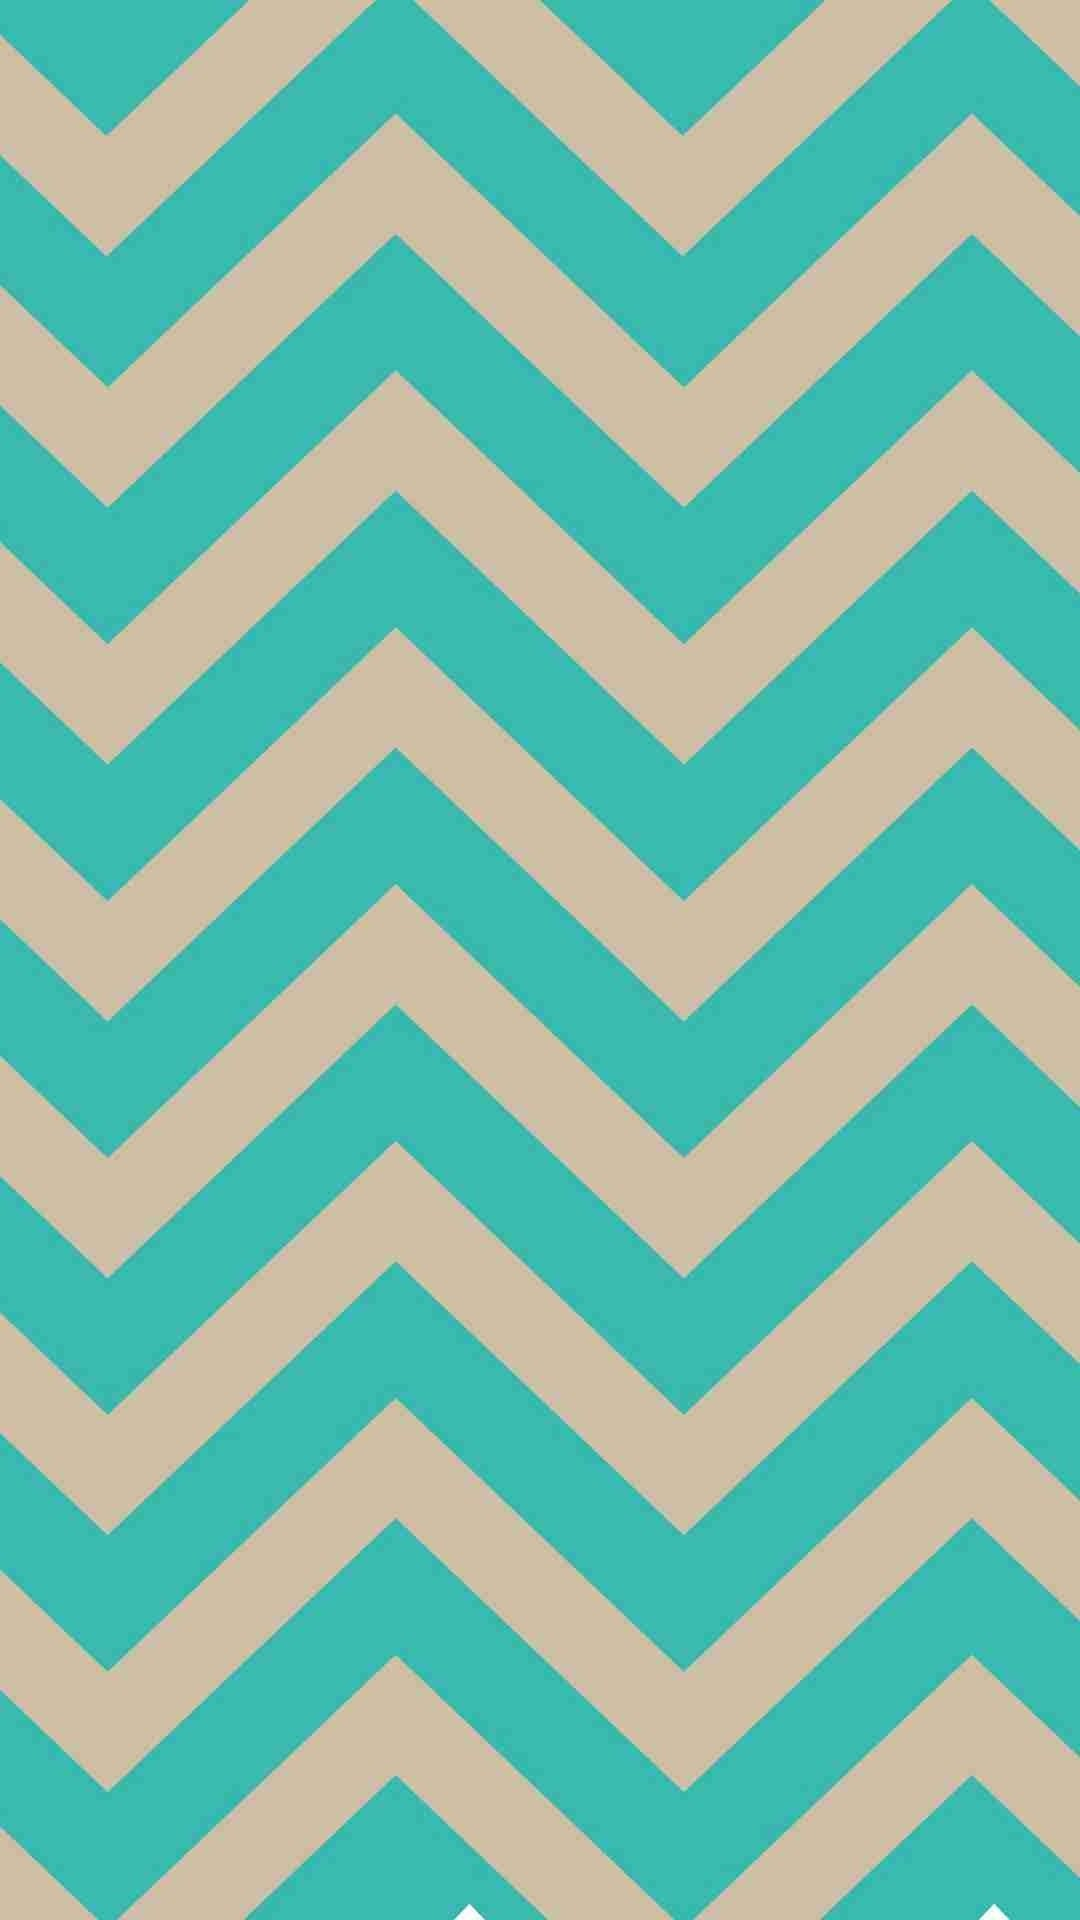 Home Design: Blue Chevron Pattern Wallpaper Contemporary Compact Brilliant  As Well As Stunning Textured Stainless